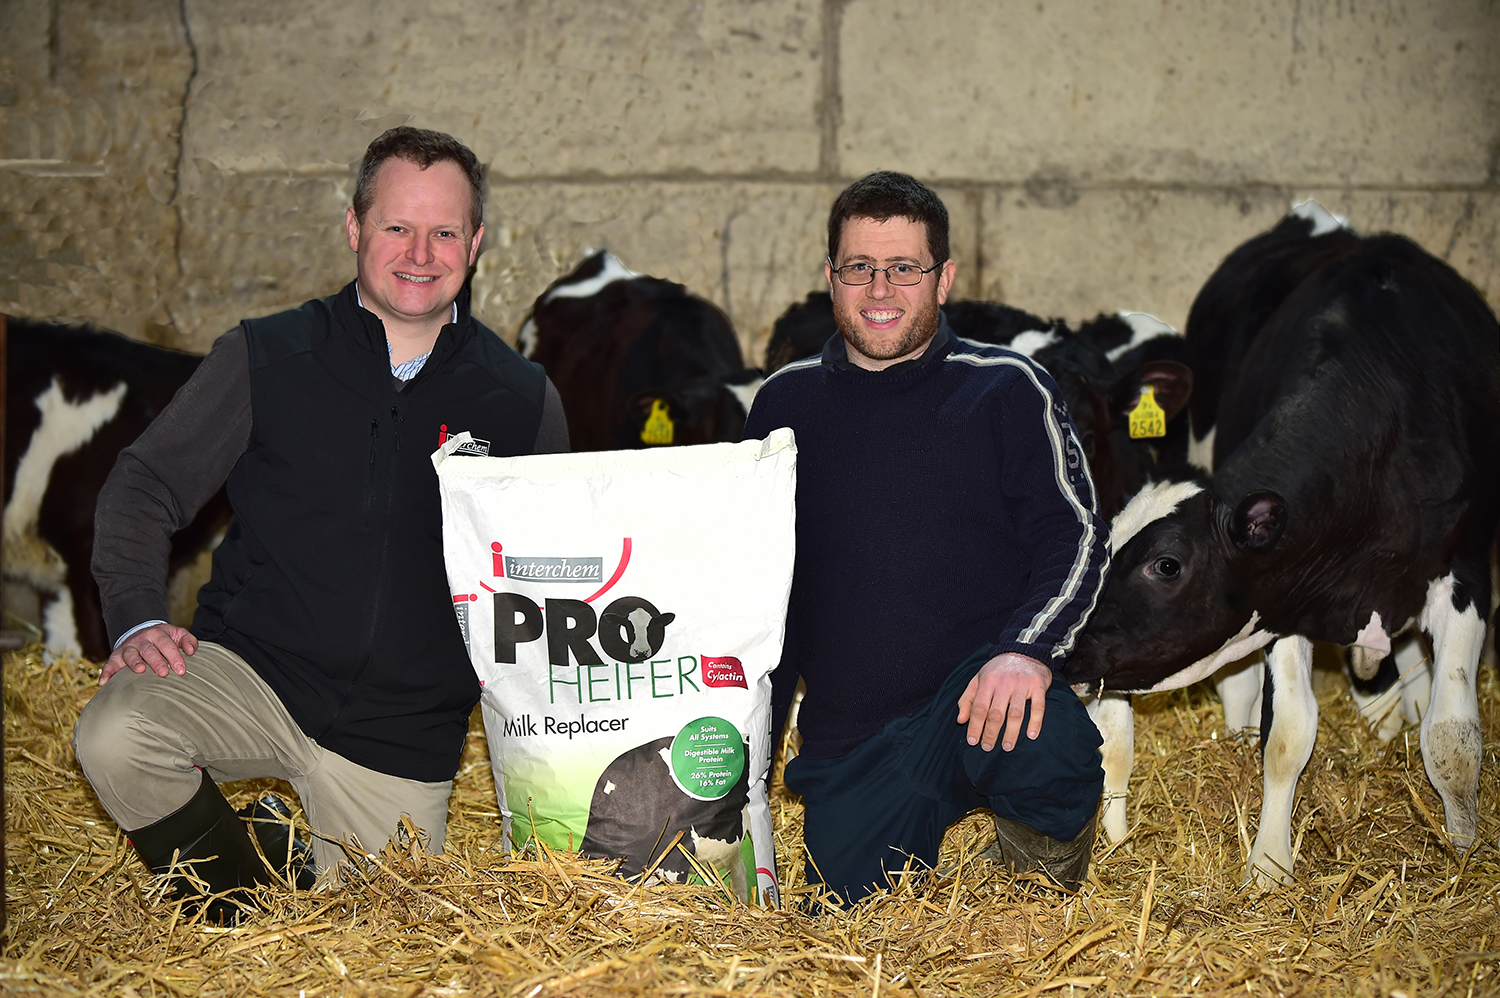 ProHeifer-Milk-Replacement-Heifer-Replacements-Andrew-Collier-Wicklow